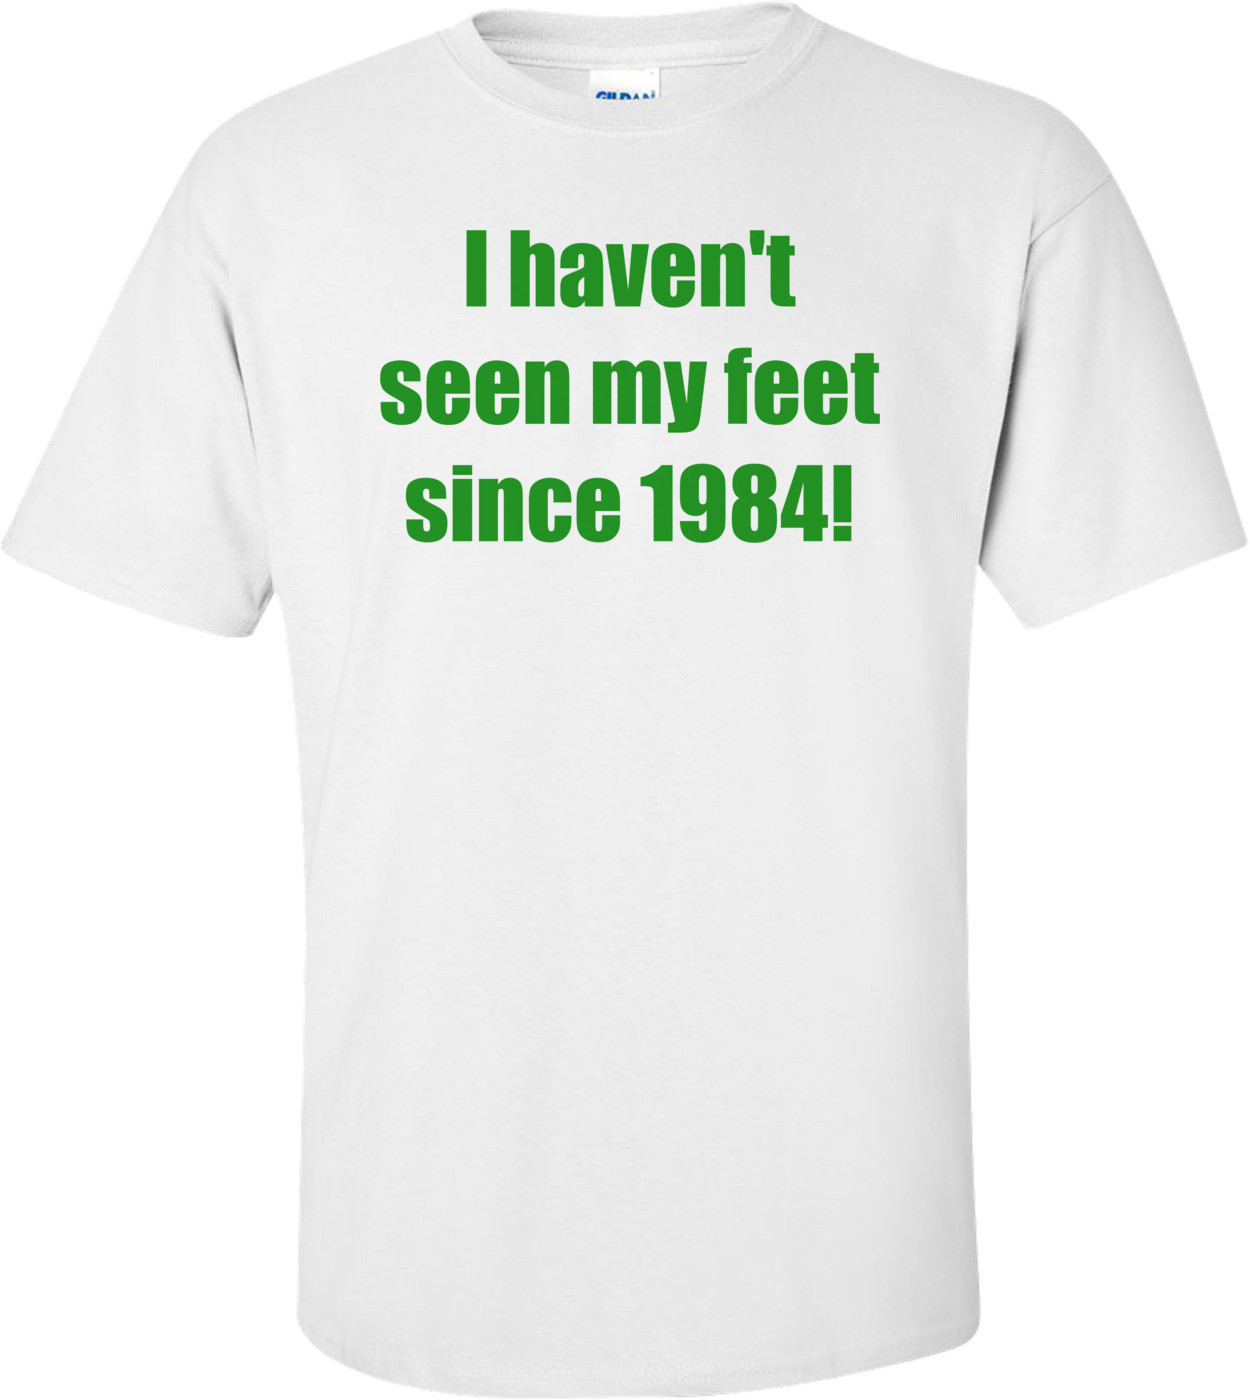 I haven't seen my feet since 1984! Shirt